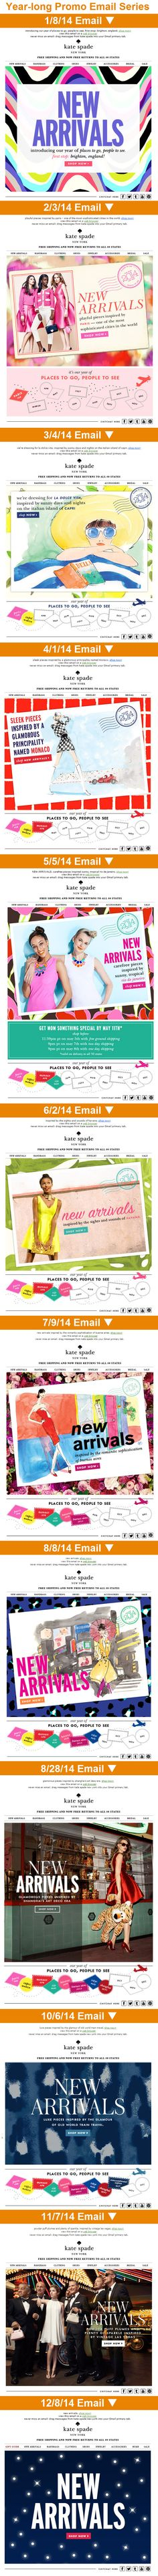 """Kate Spade >> sent monthly during 2014 >> new arrivals >> When most email marketing campaigns are decidedly short-term, Kate Spade's year-long """"Places to Go, People to See"""" campaign really stands out. Each email focuses on new clothing arrivals inspired by different locales, and the banner at the bottom of the email ties them all together. —Anna Meier, Manager, East Creative Services, Salesforce Marketing Cloud"""